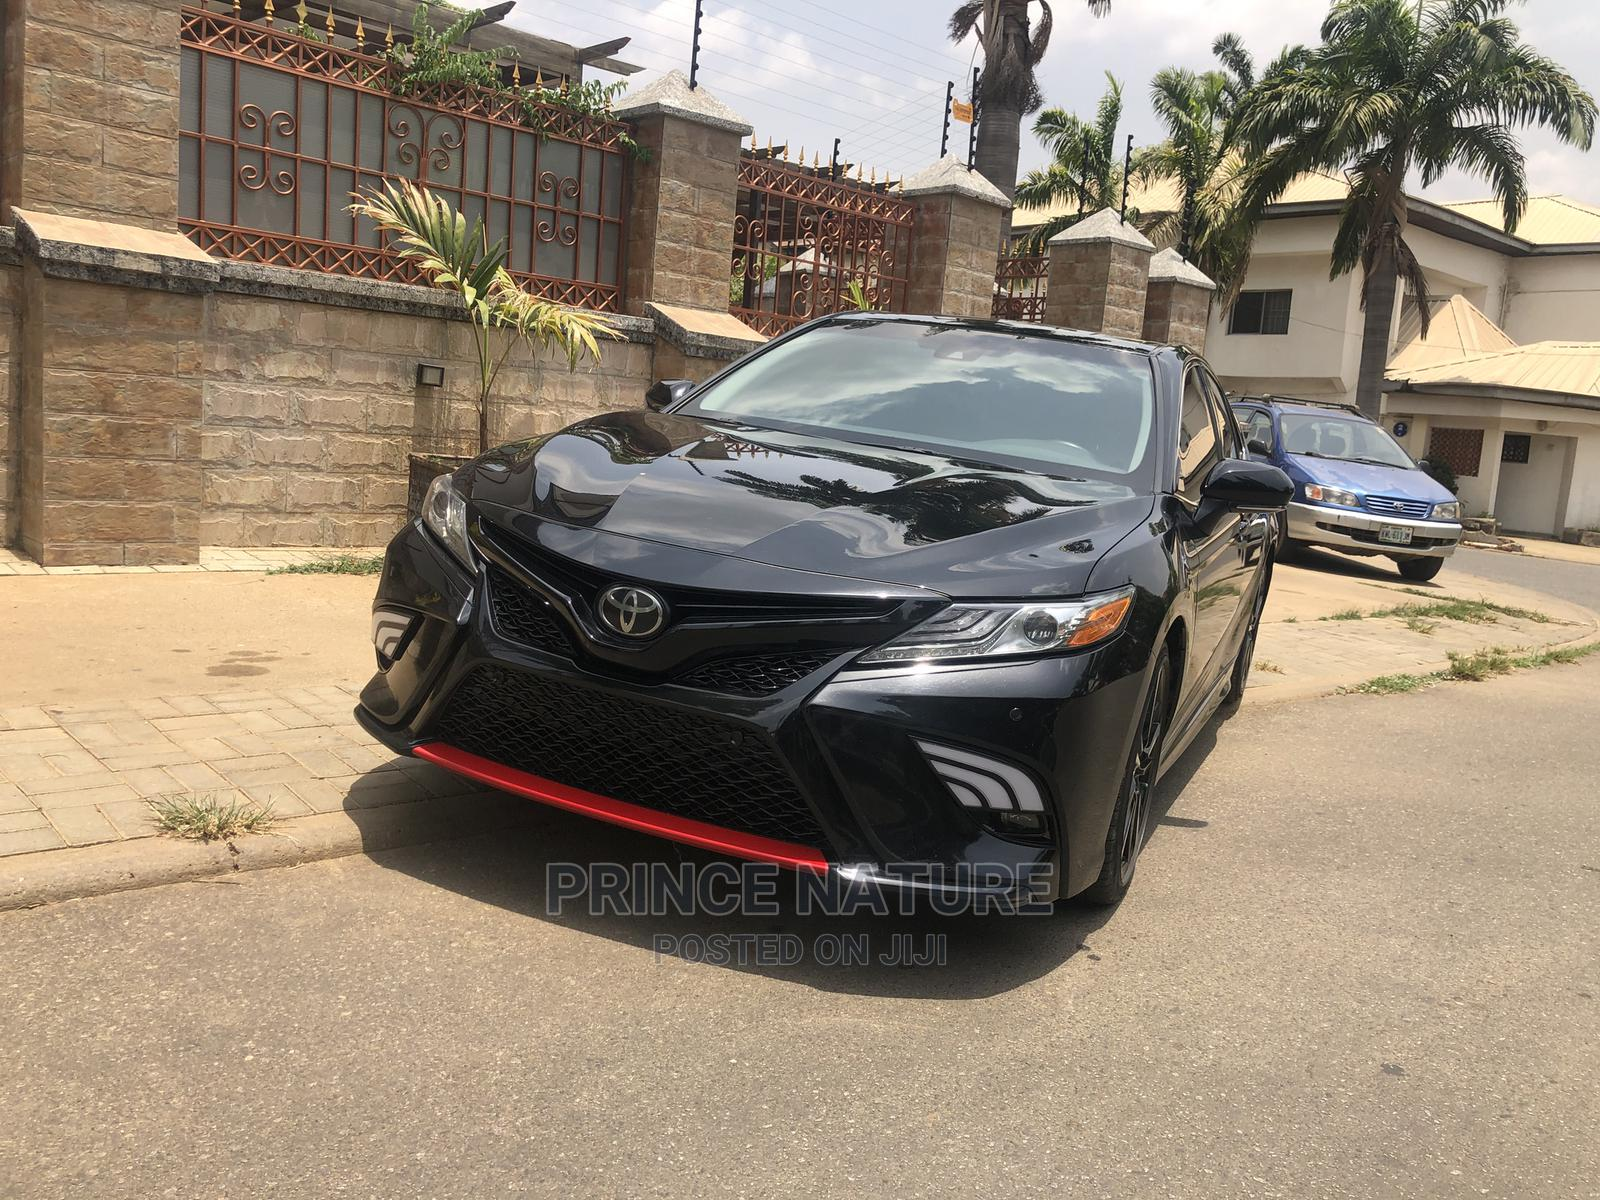 Toyota Camry 2019 XSE (2.5L 4cyl 8A) Black